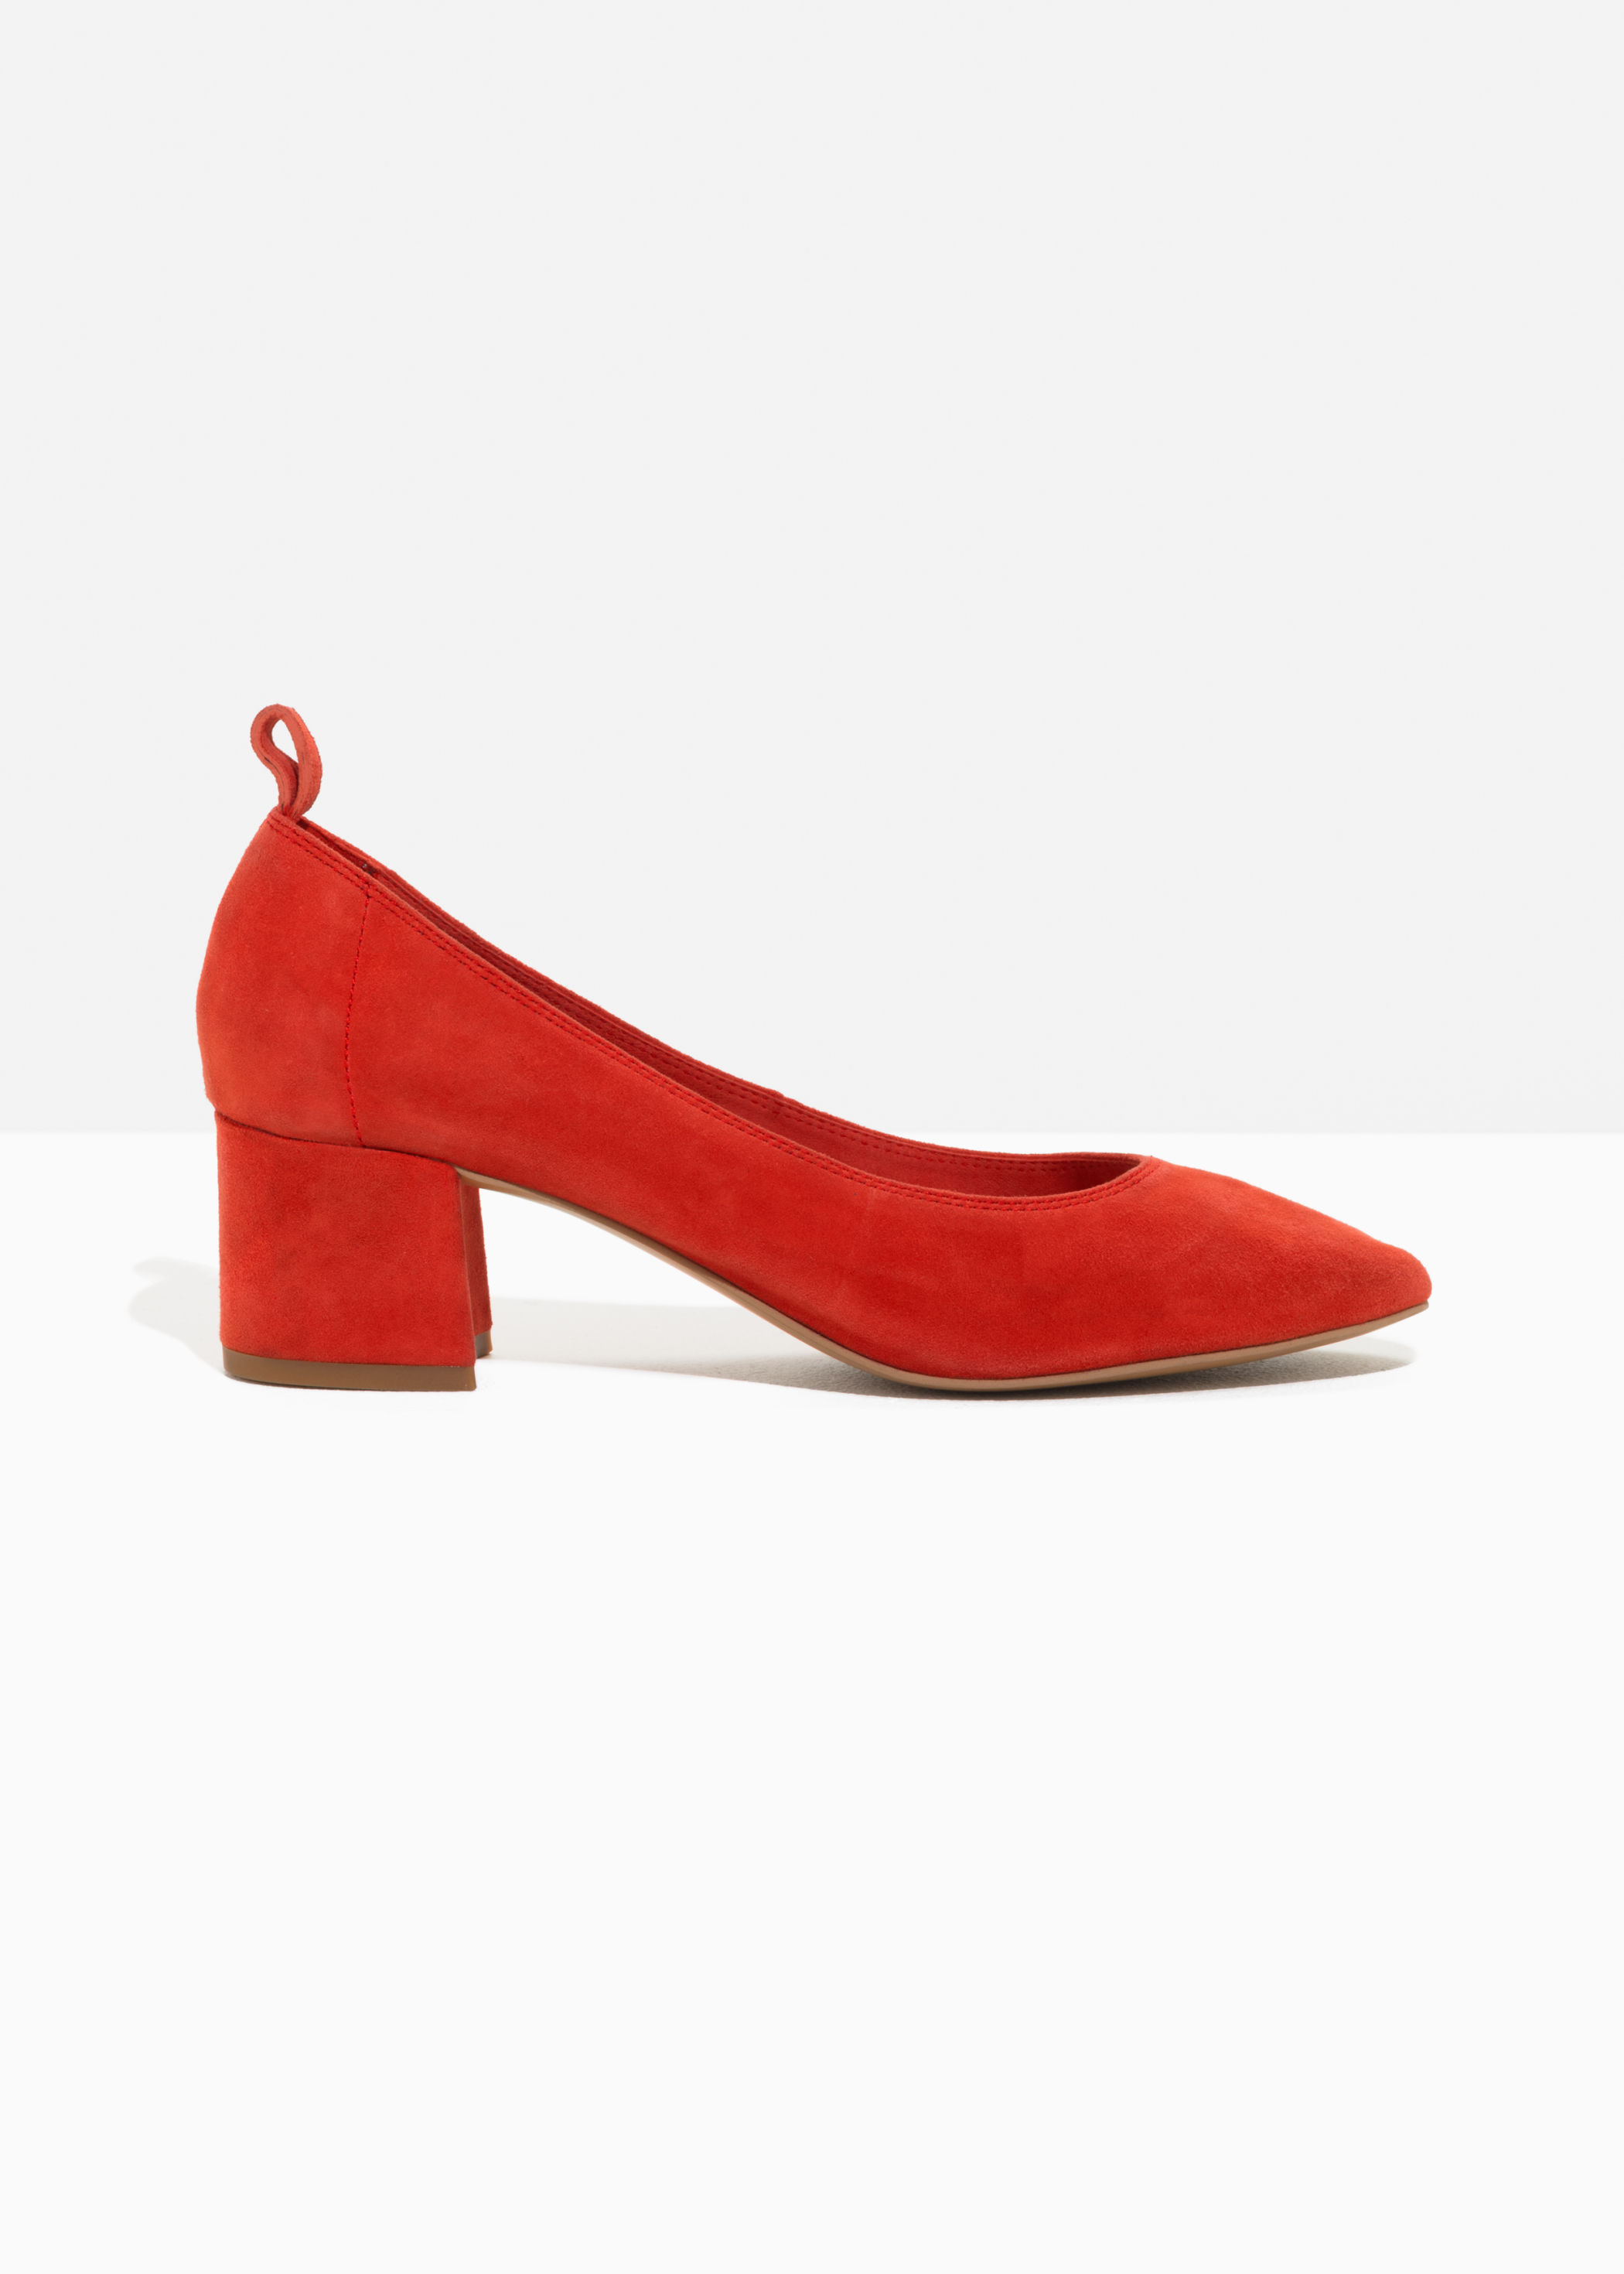 7aaeca4354a1 Closet Item  Red heels. How To Make It Work  If you have to D.I.Y. one  thing for Halloween